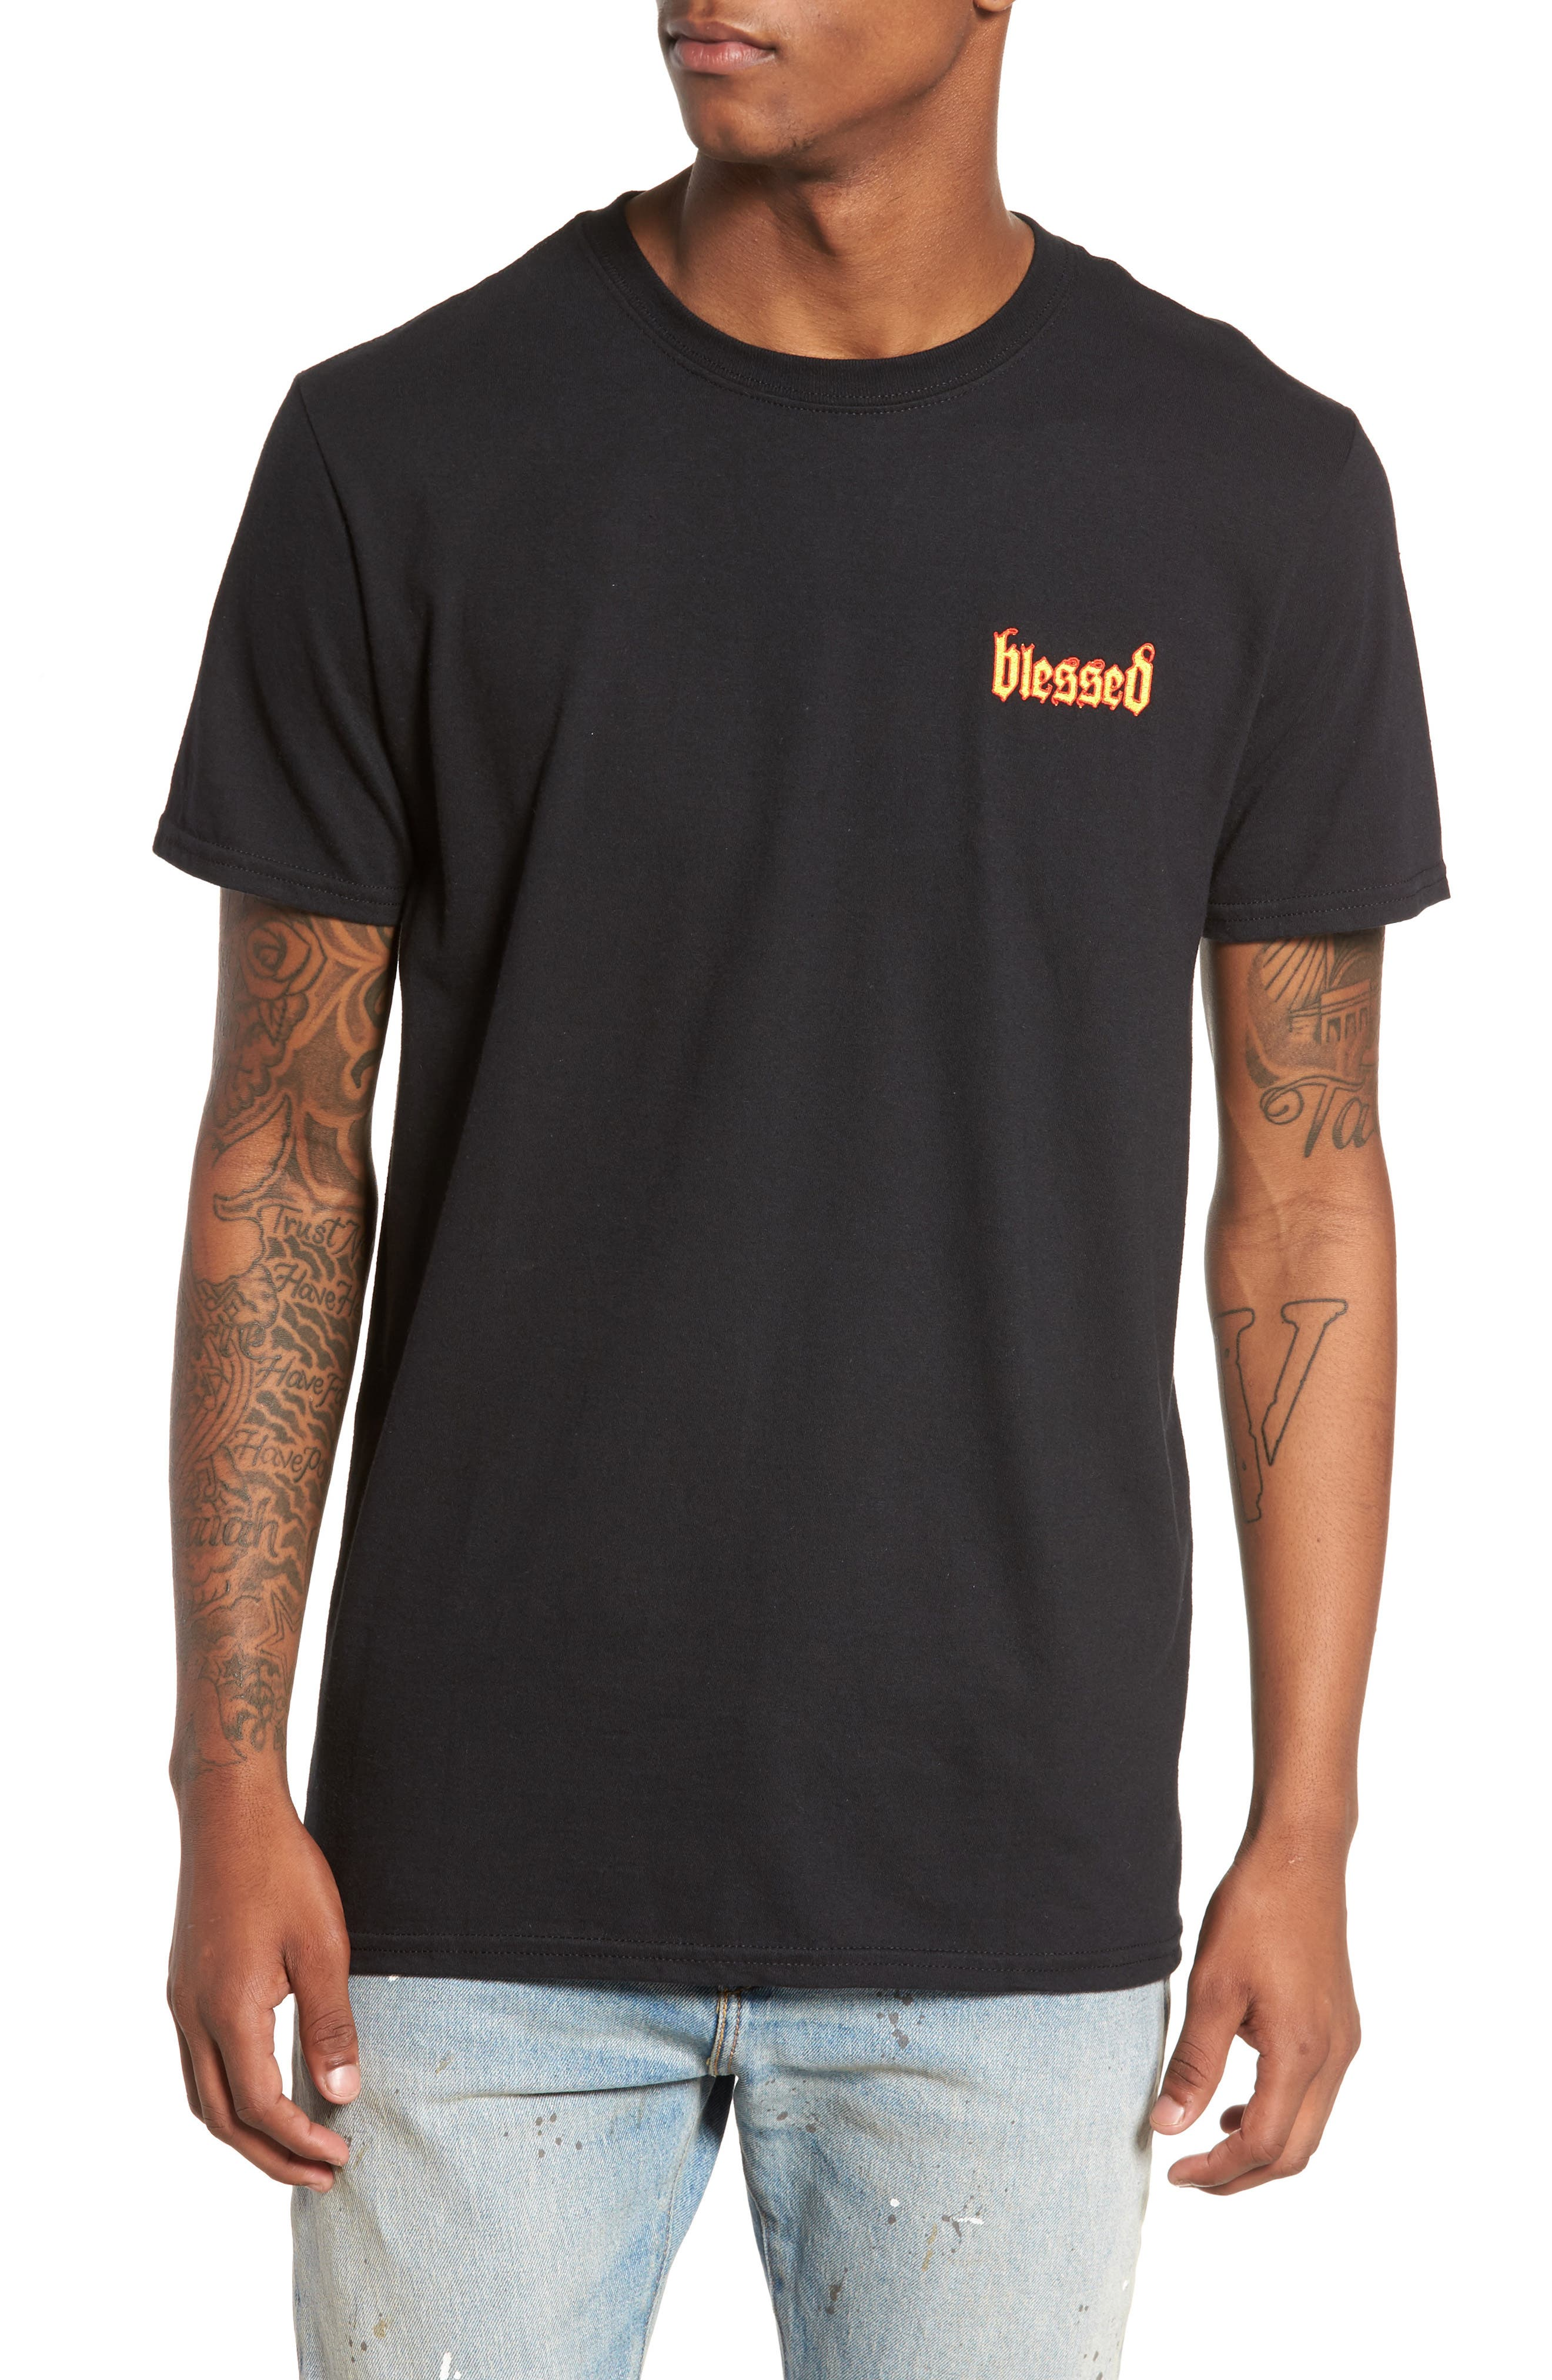 Blessed T-Shirt,                             Main thumbnail 1, color,